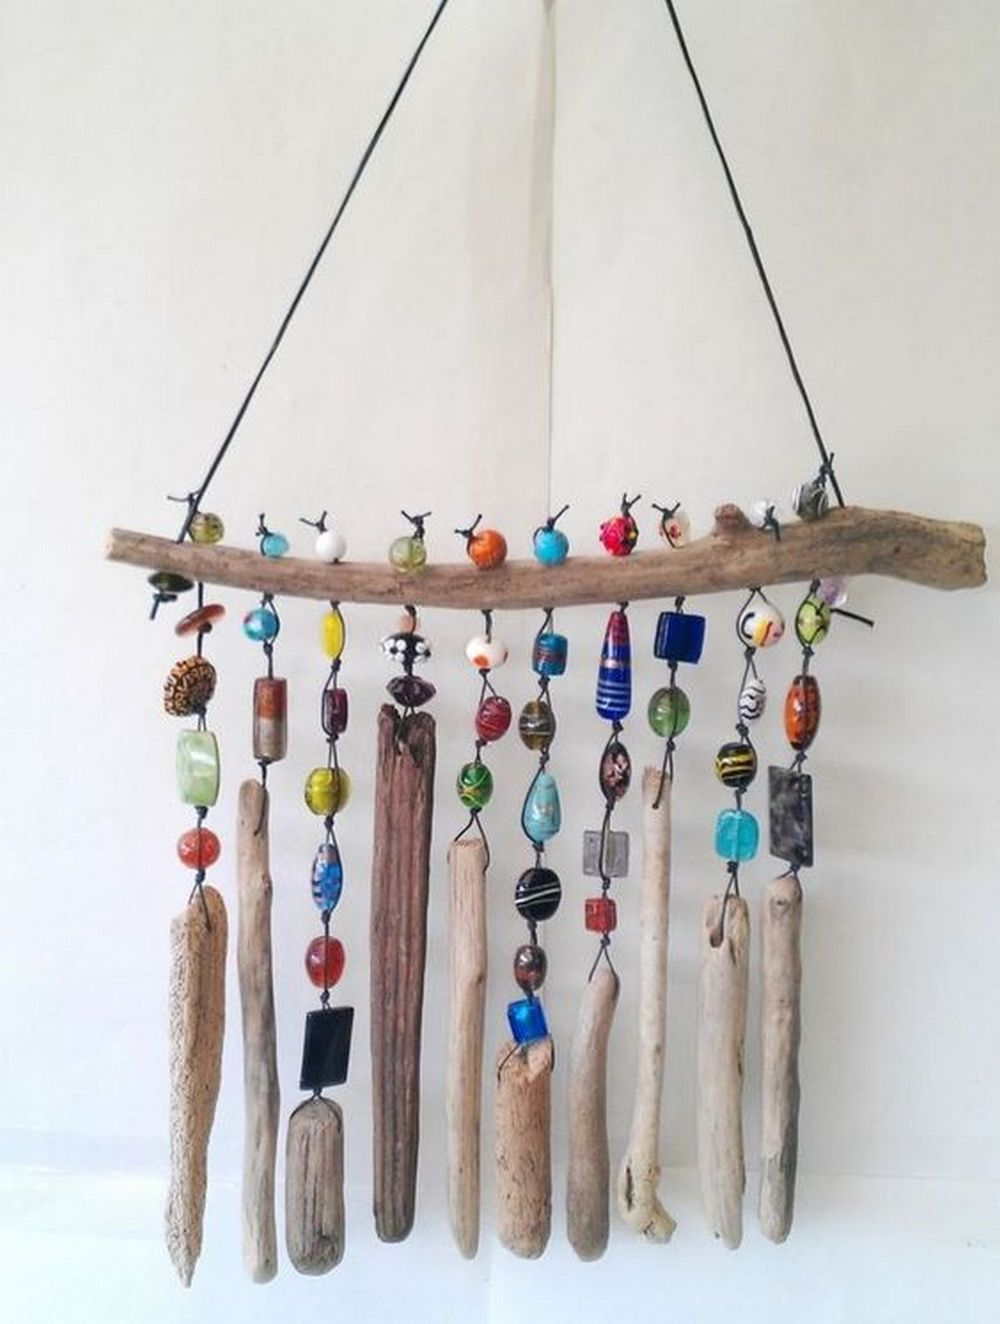 Unleash your creative juices and have fun with beads by making a beaded wind chime!